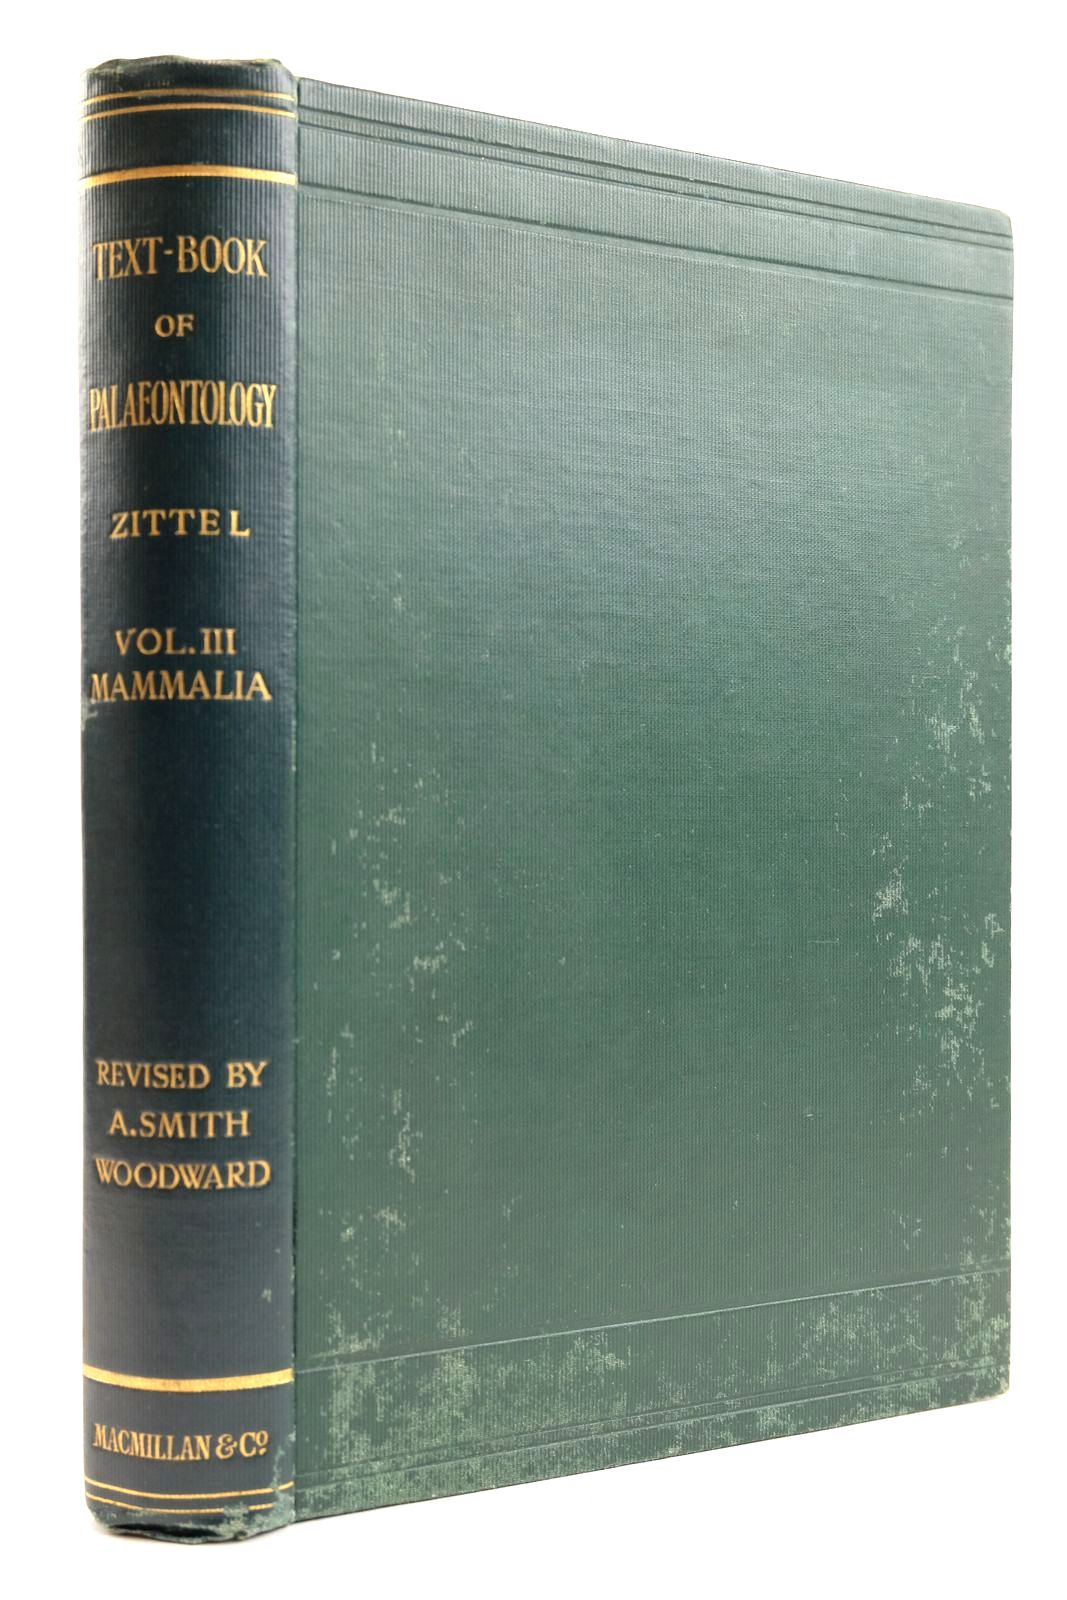 Photo of TEXT-BOOK OF PALAEONTOLOGY VOL. III MAMMALIA- Stock Number: 2132742